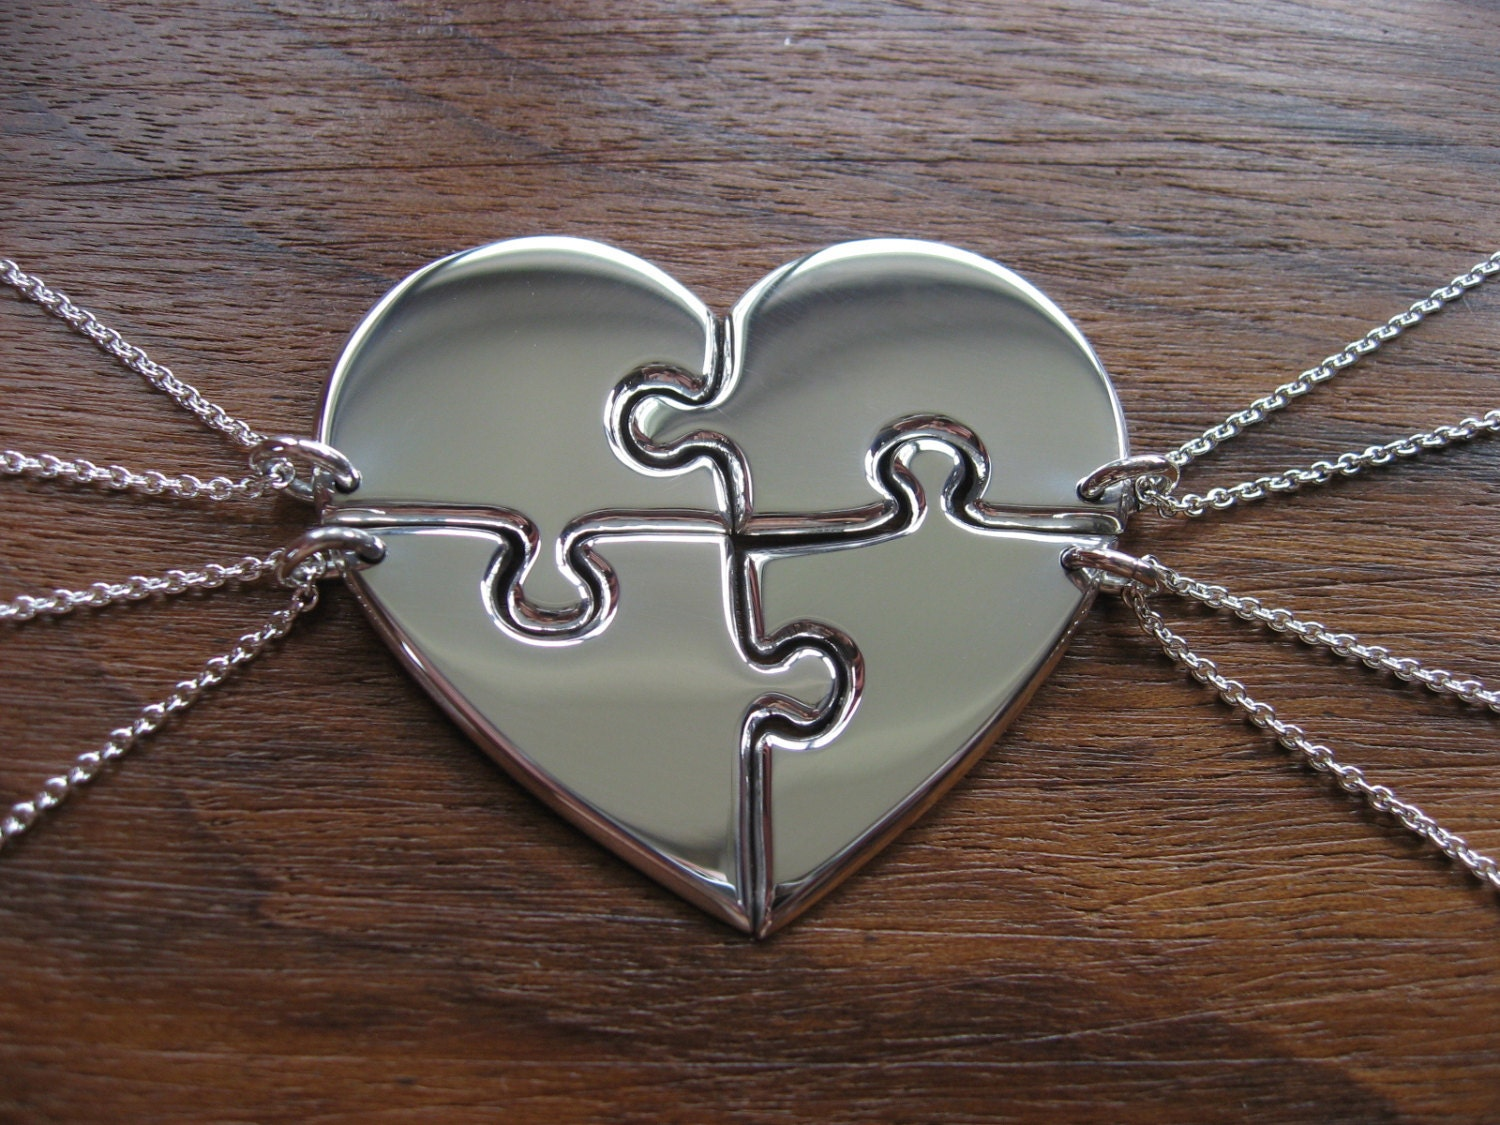 Four Piece Heart Puzzle Pendant Necklaces